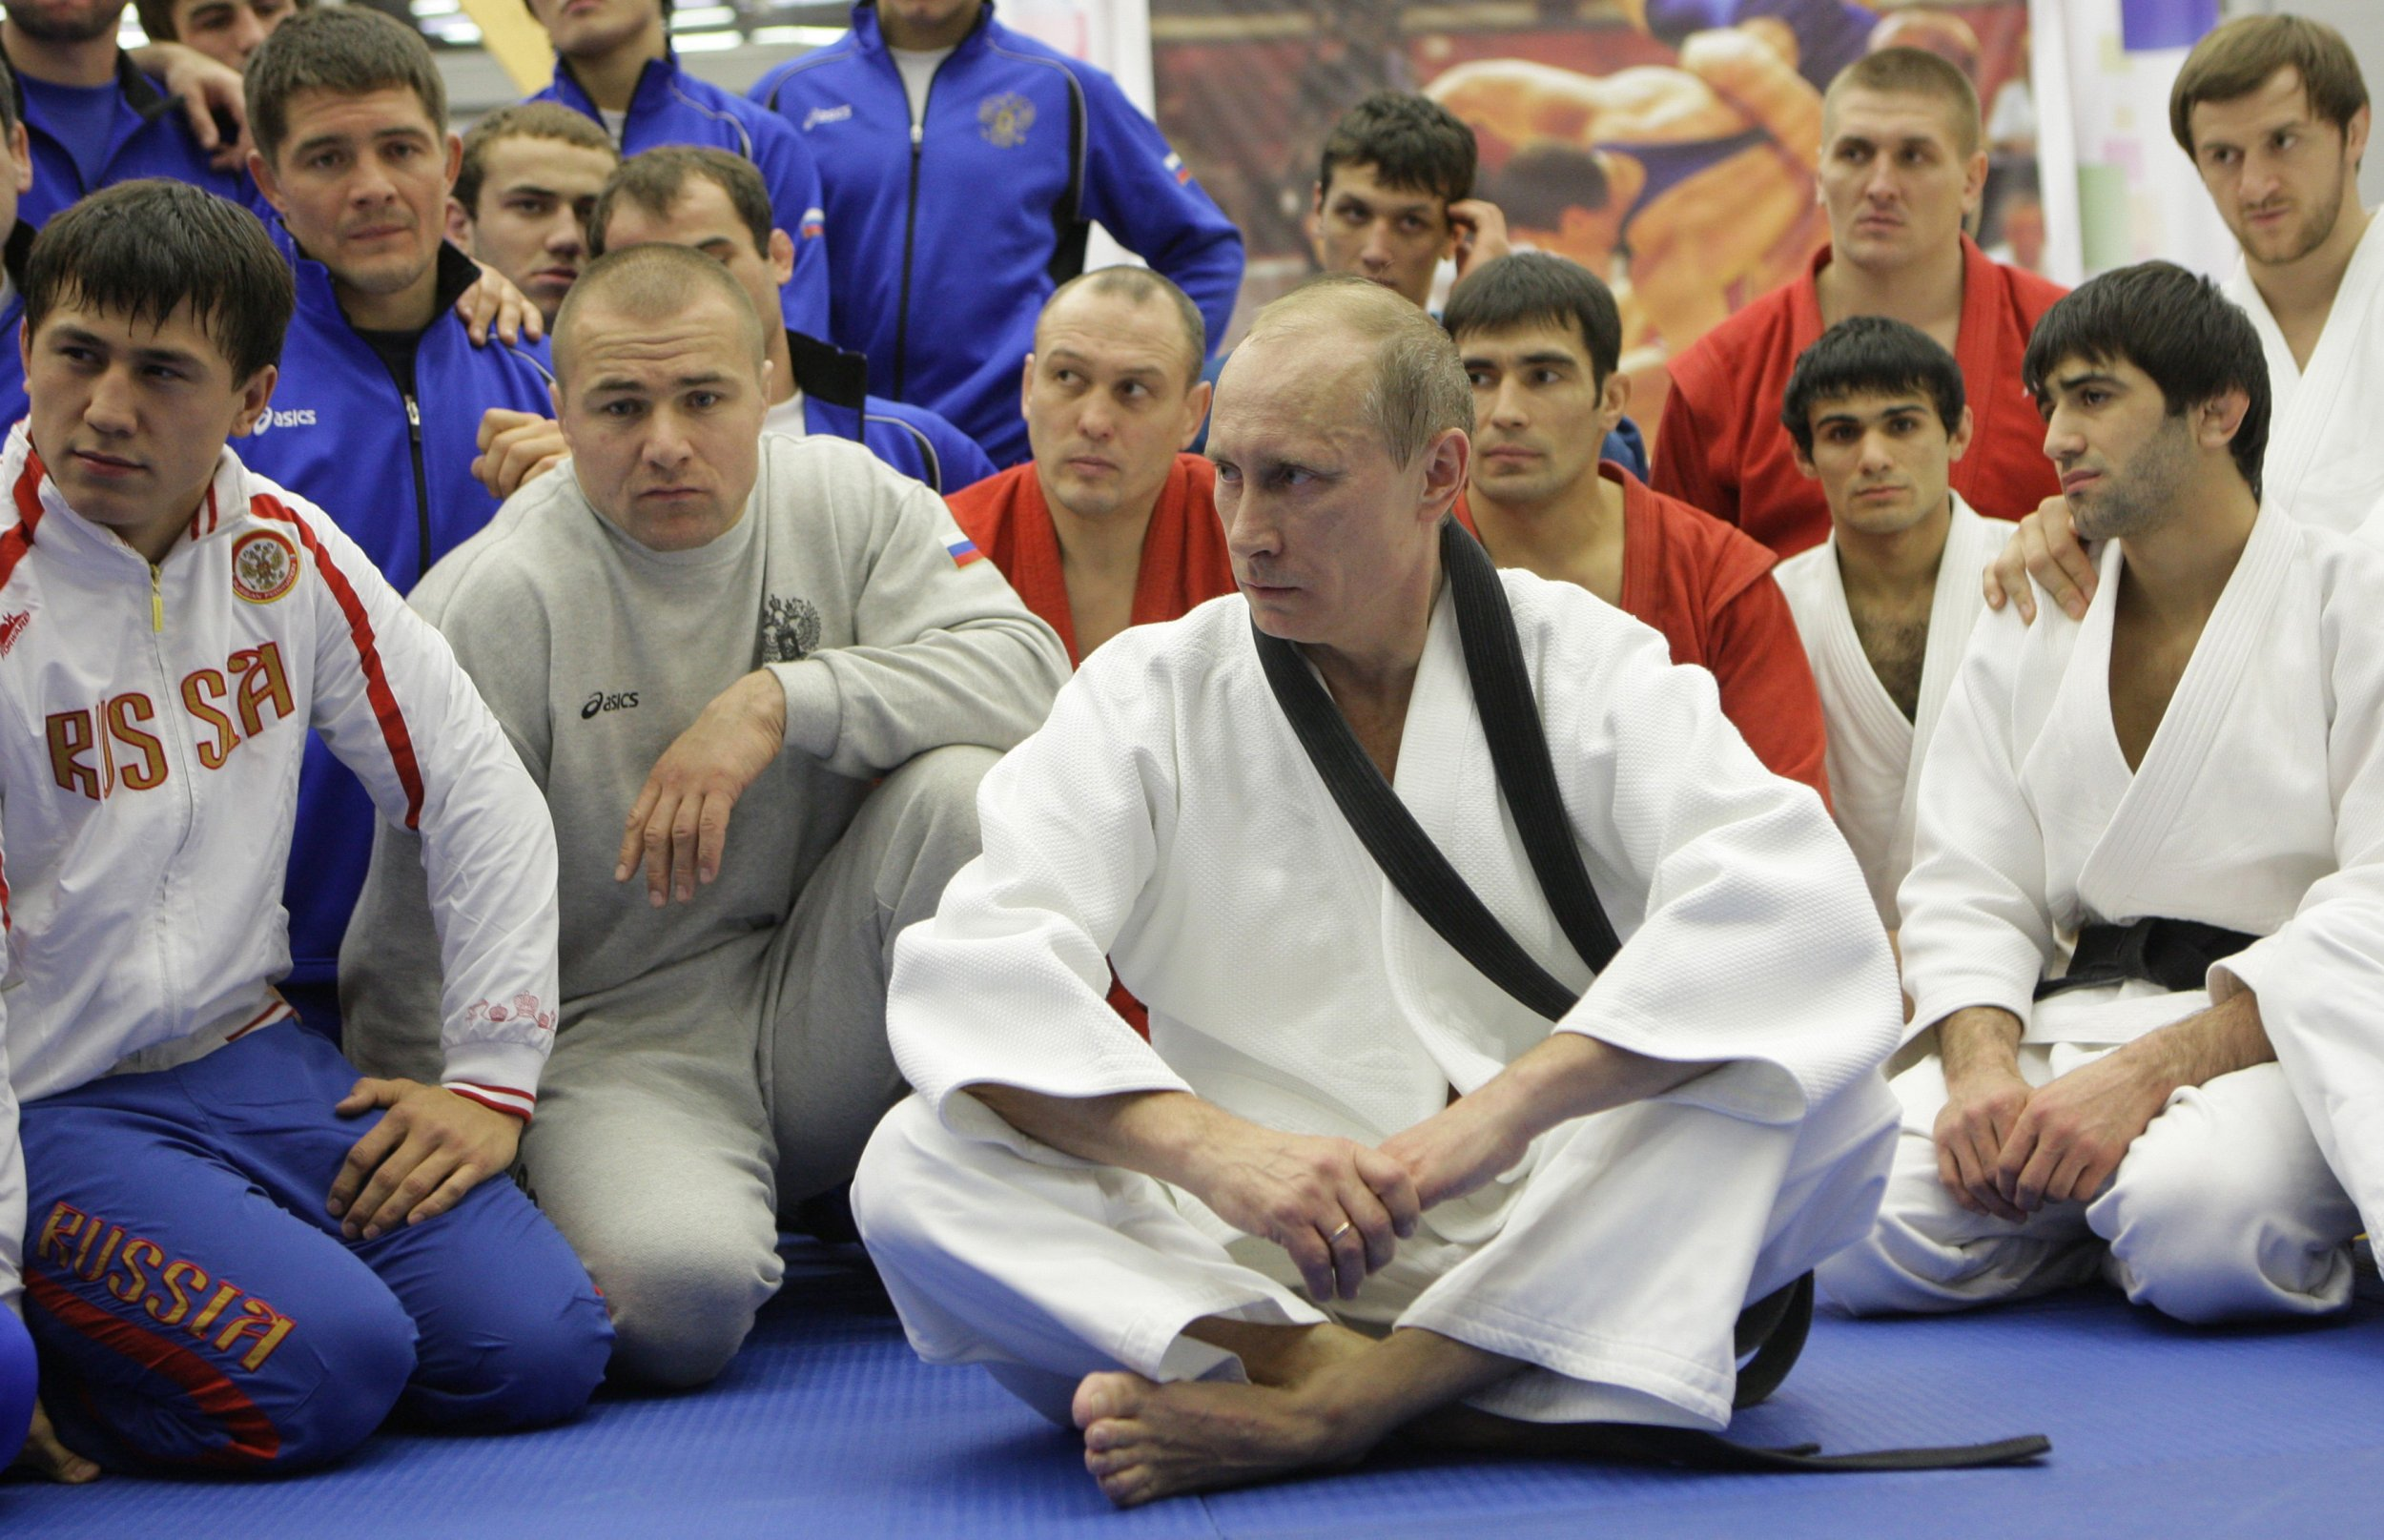 Vladimir Putin in judo uniform